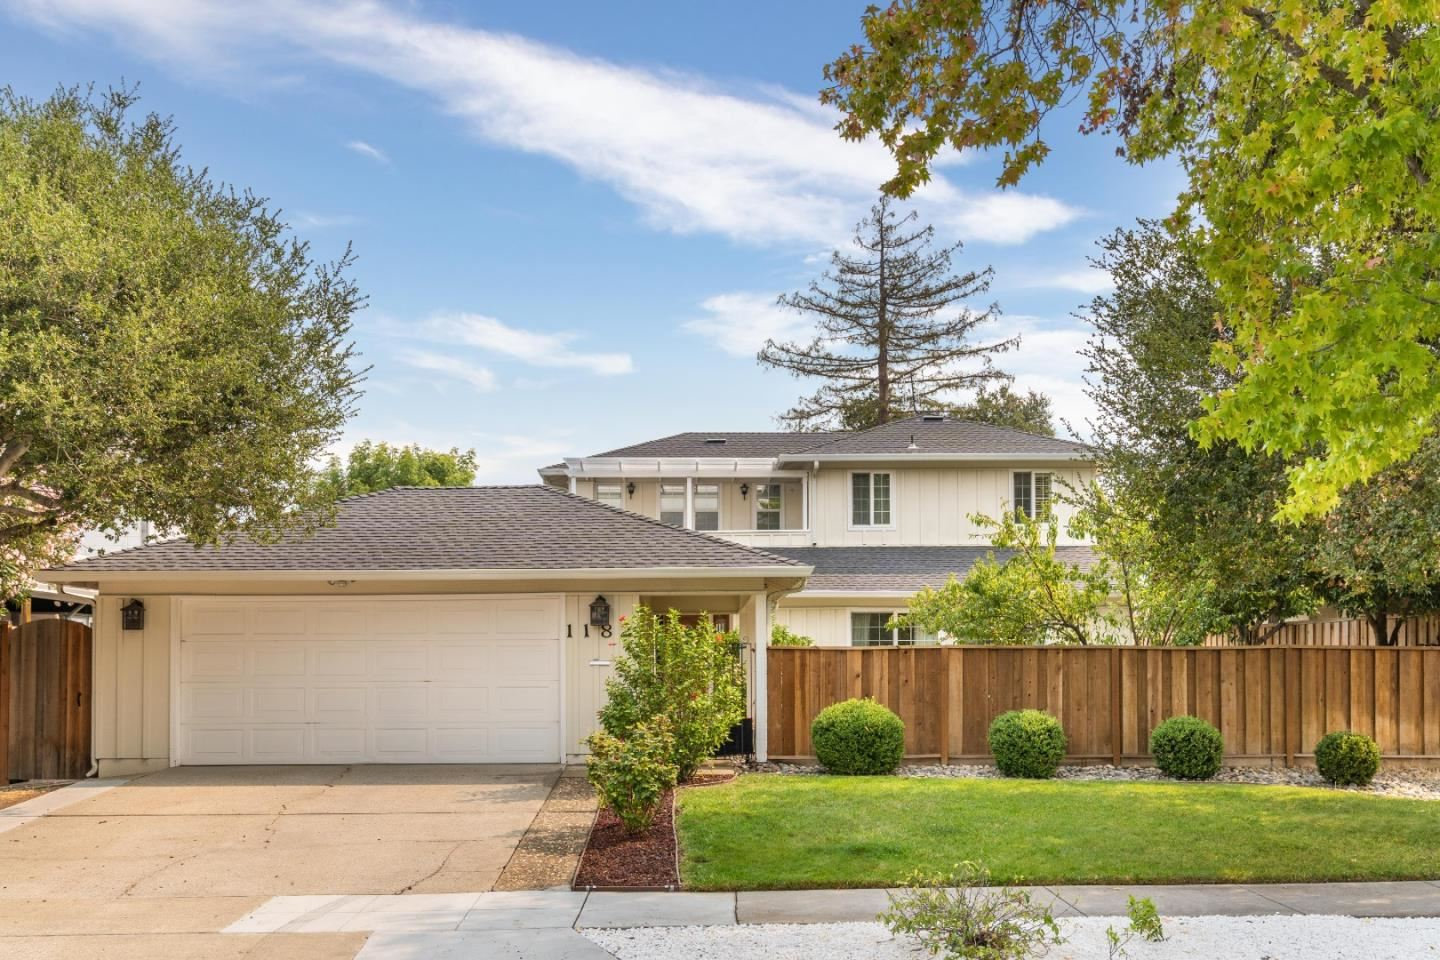 Photo for 1182 Stafford DR, CUPERTINO, CA 95014 (MLS # ML81815032)